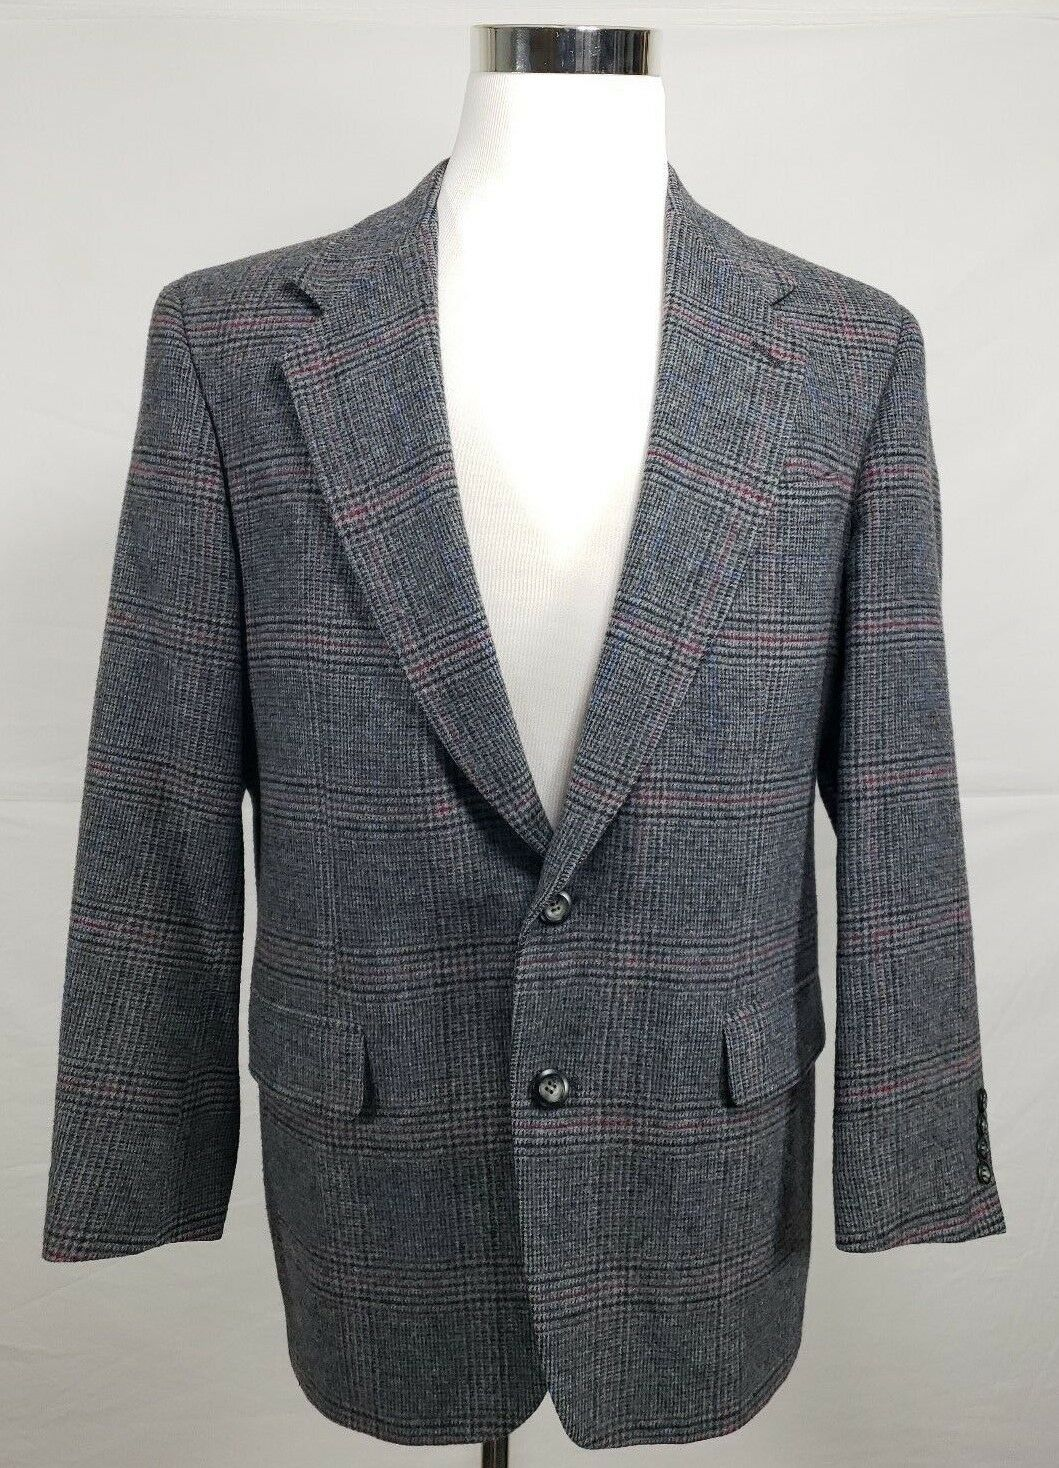 Briar Premier Edition 40R 100% Camel Hair 2 Button Blazer Grey Windowpane Stripe